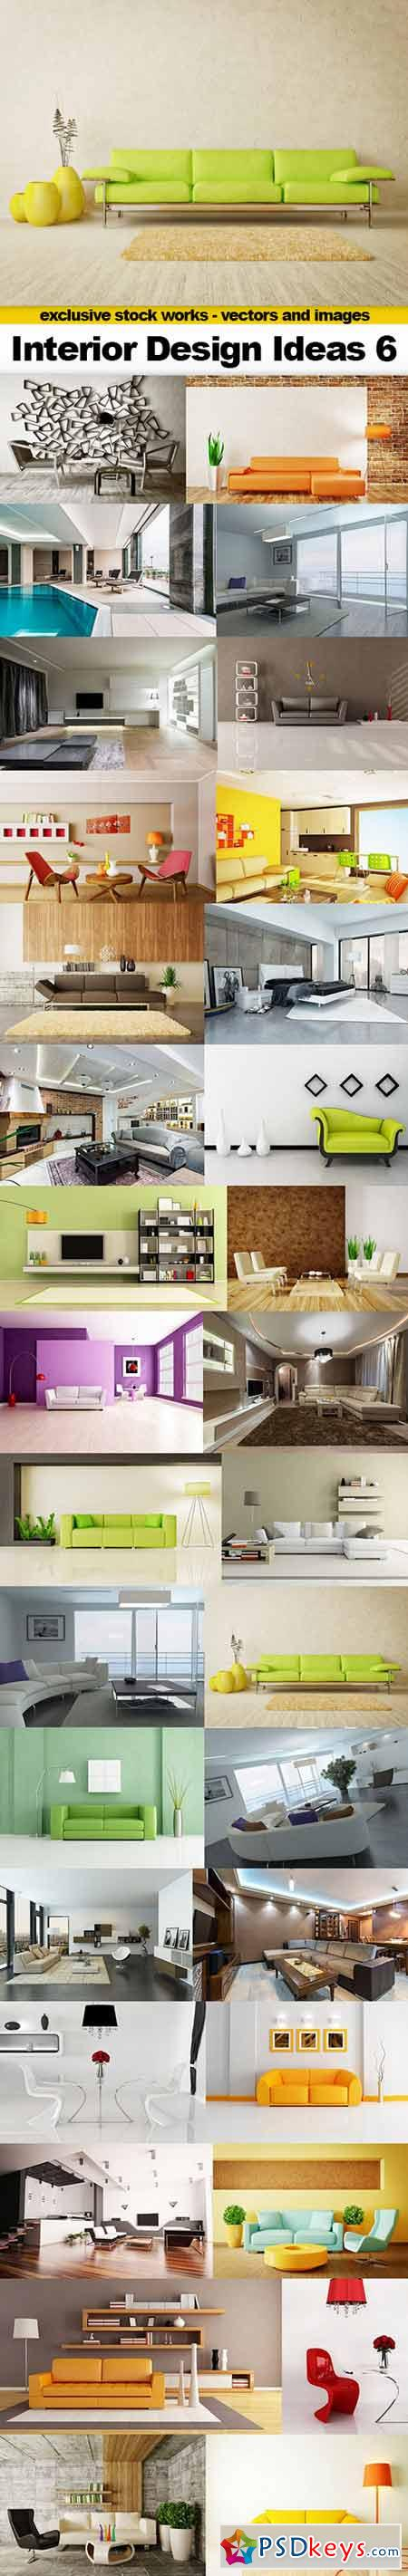 Interior Design Ideas 6 - 32x UHQ JPEGs